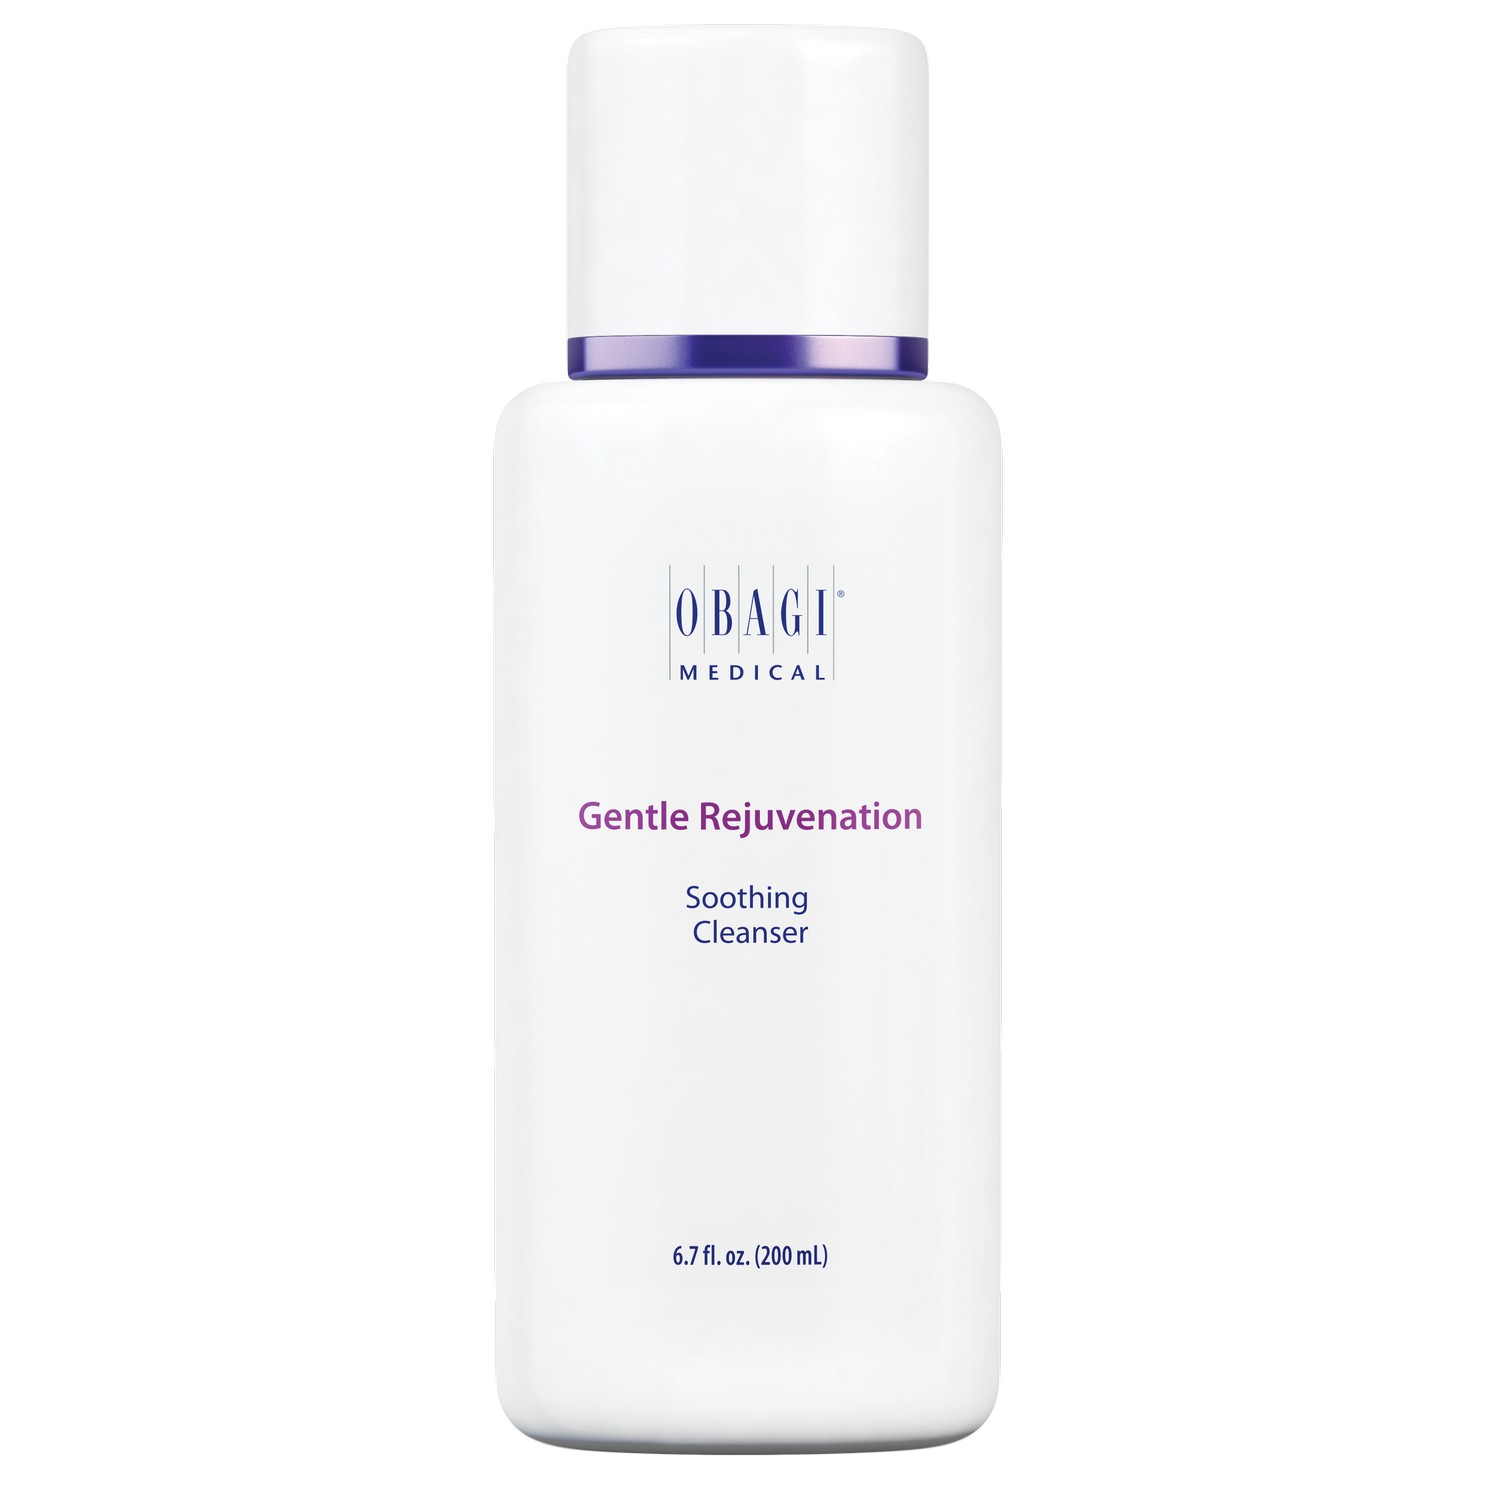 OBAGI Gentle Rejuvenation Soothing Cleanser (6.7 fl oz / 200 ml)